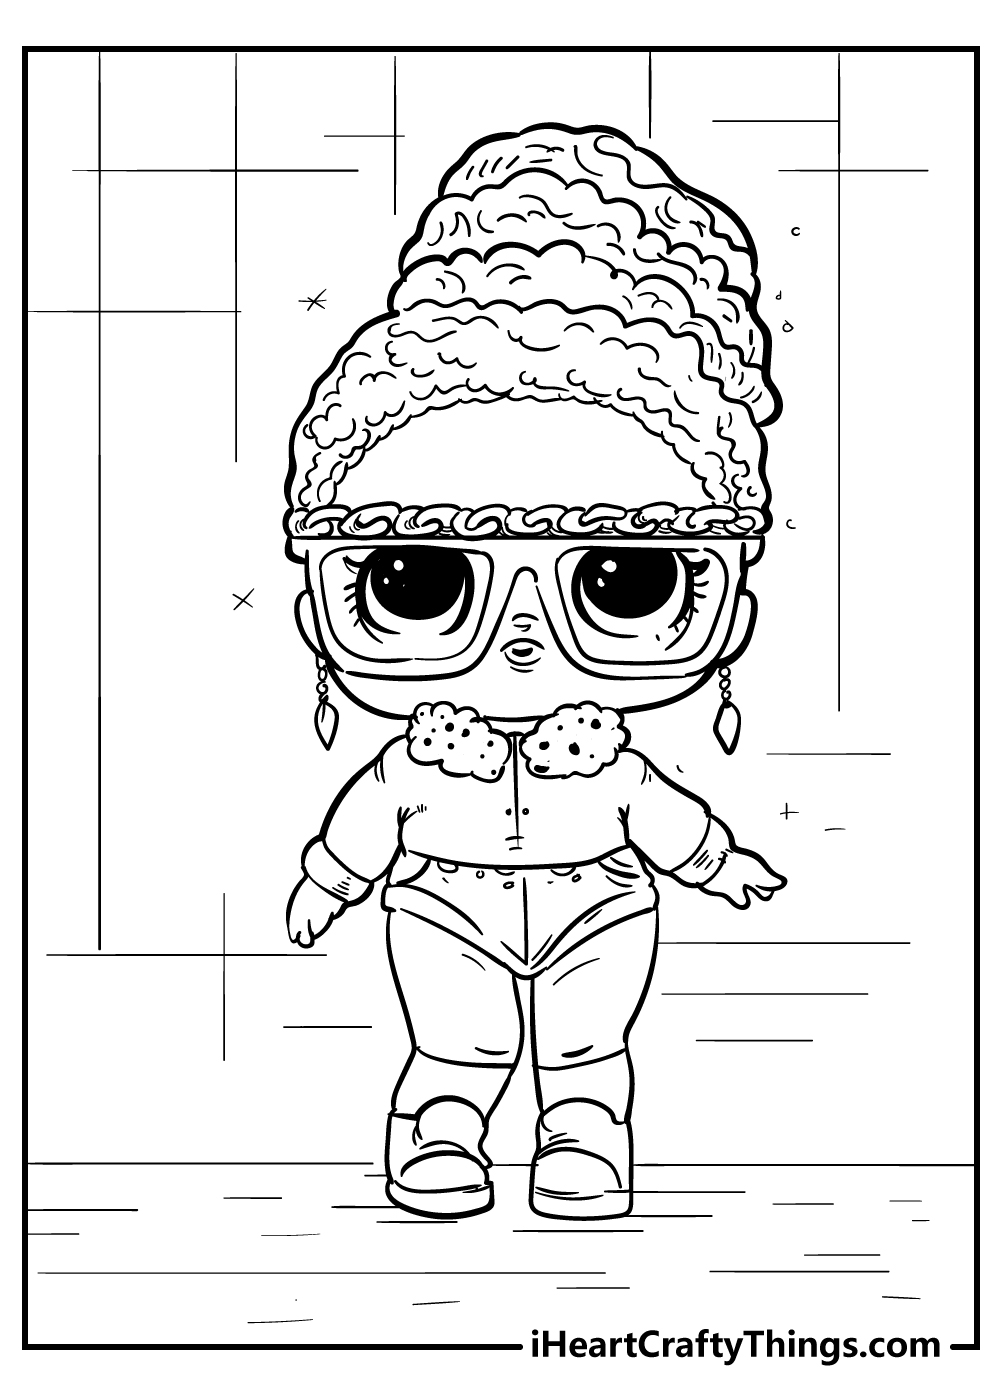 LOL doll coloring pages free download